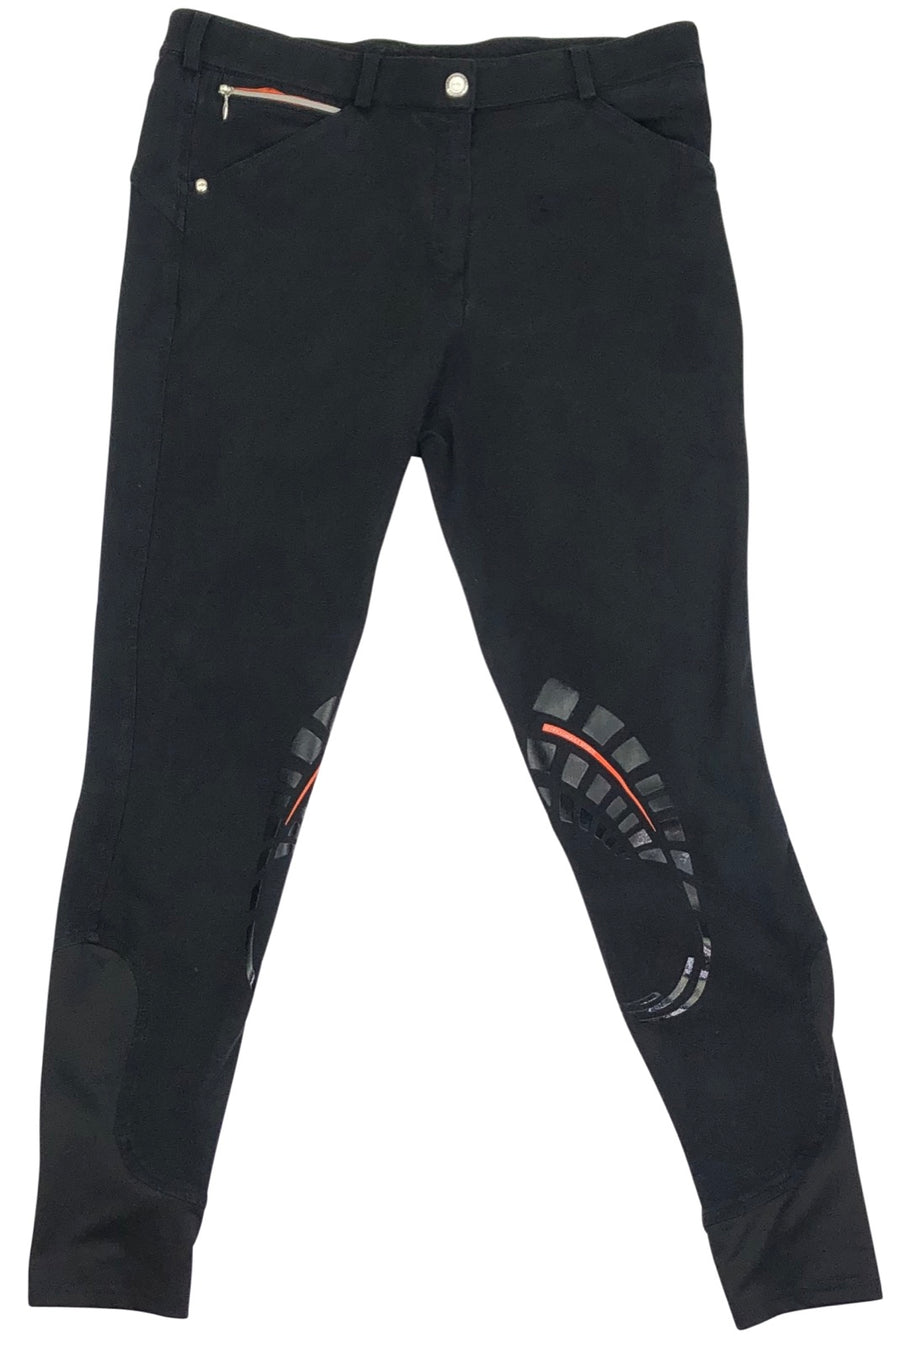 Schockemohle Libra Grip Breeches in Black